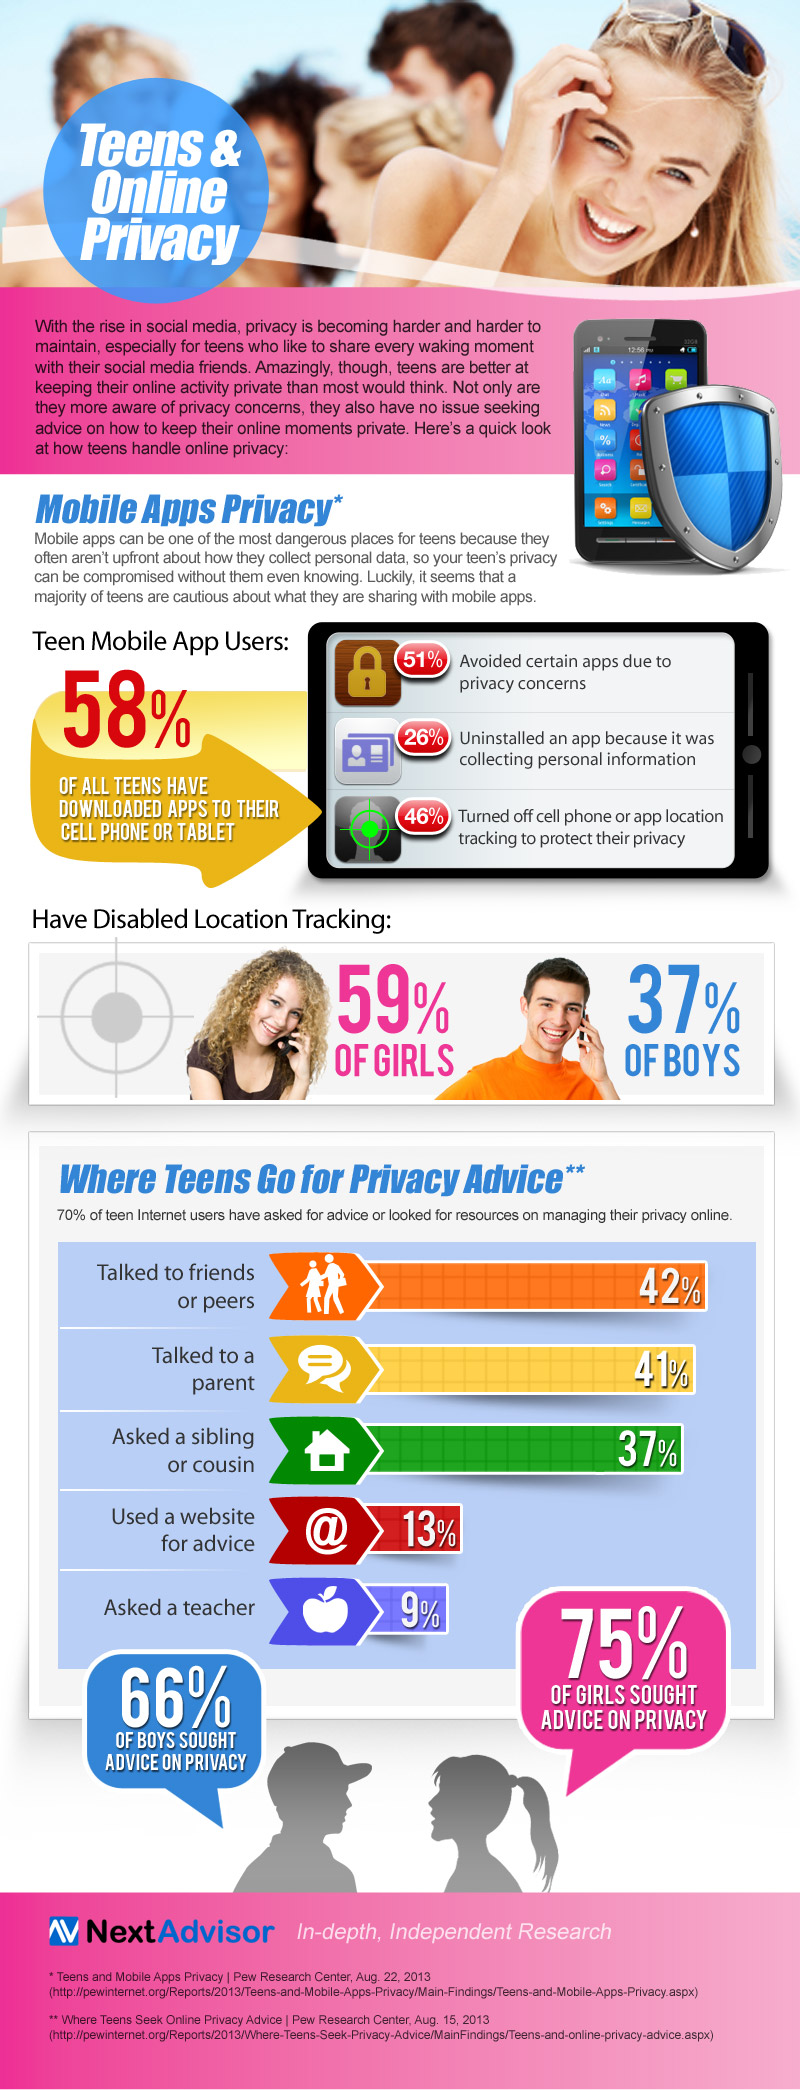 8na-infographic-teensonlineprivacy-FINAL-800px.jpg